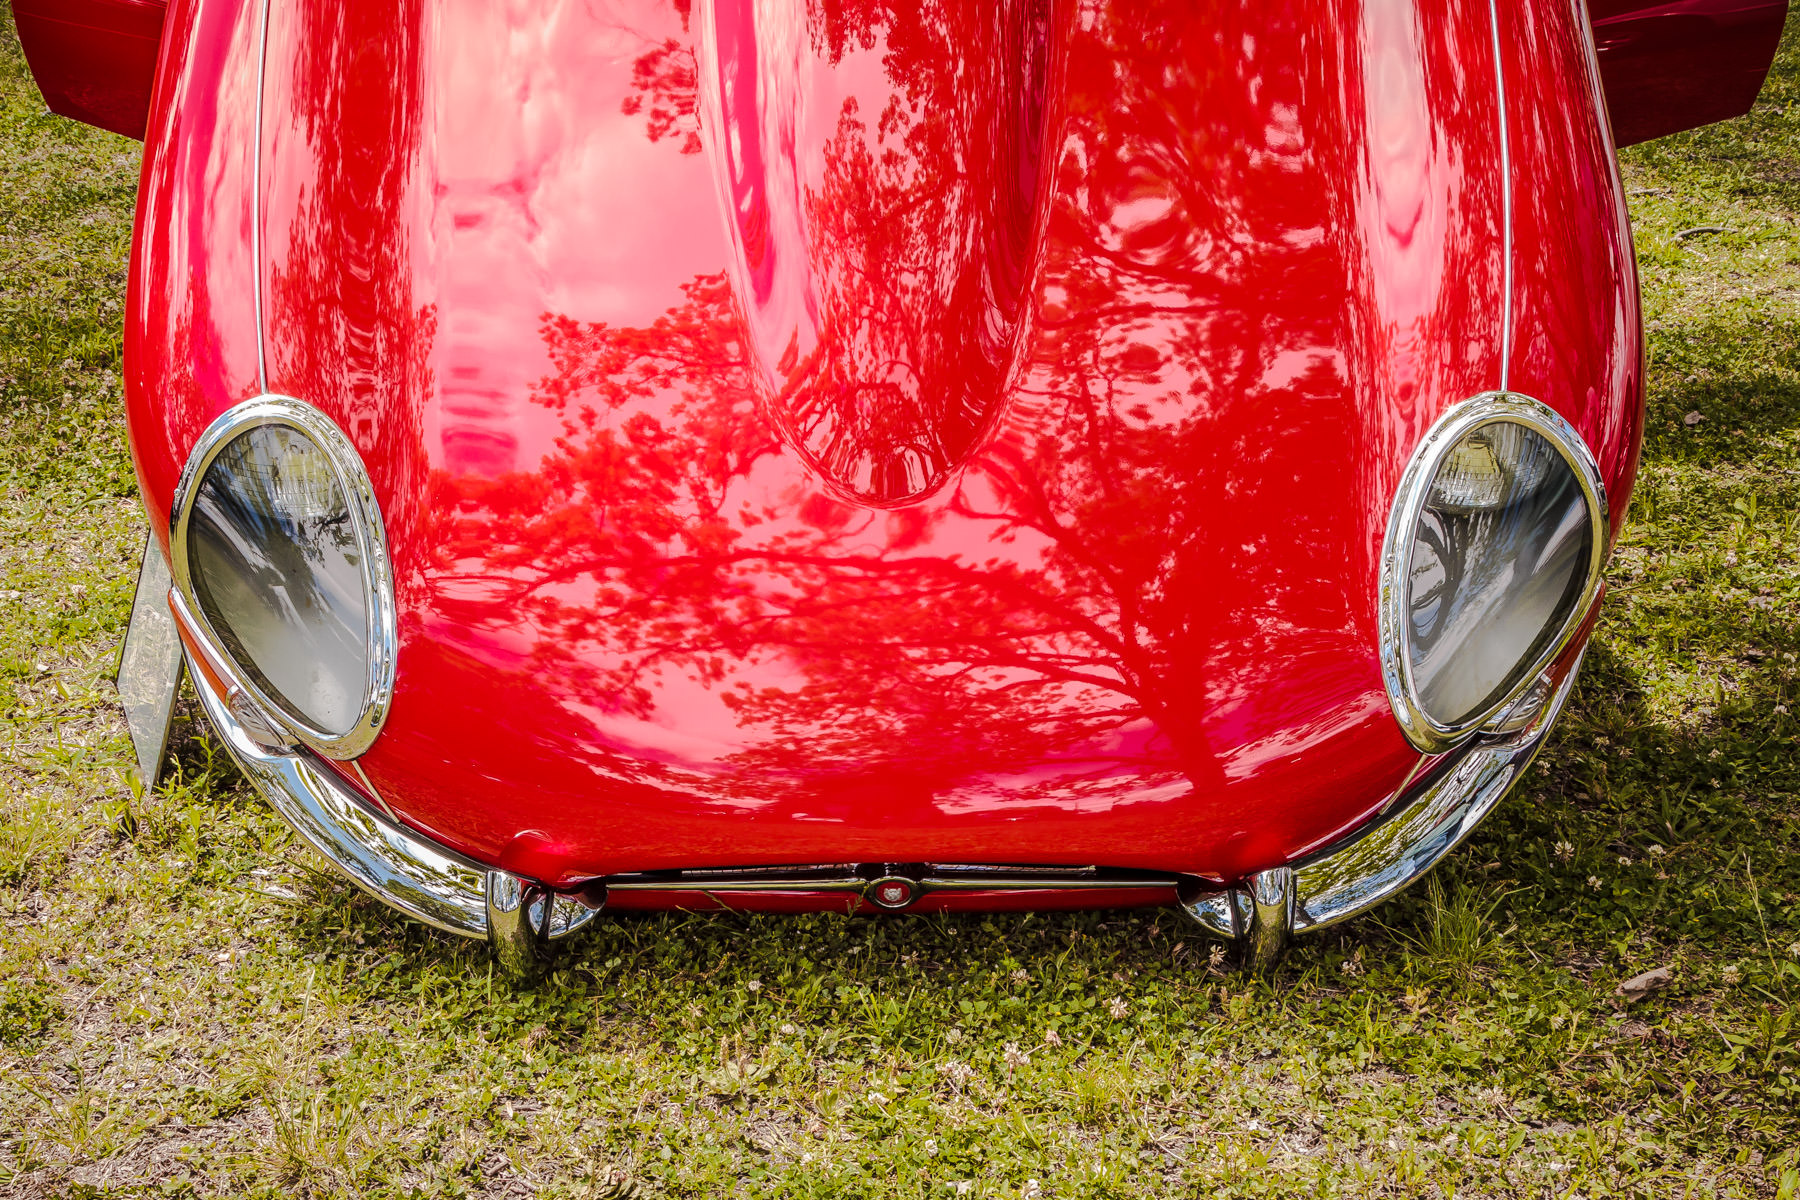 A Jaguar E-Type's hood (or bonnet) at Dallas' All British and European Car Day.